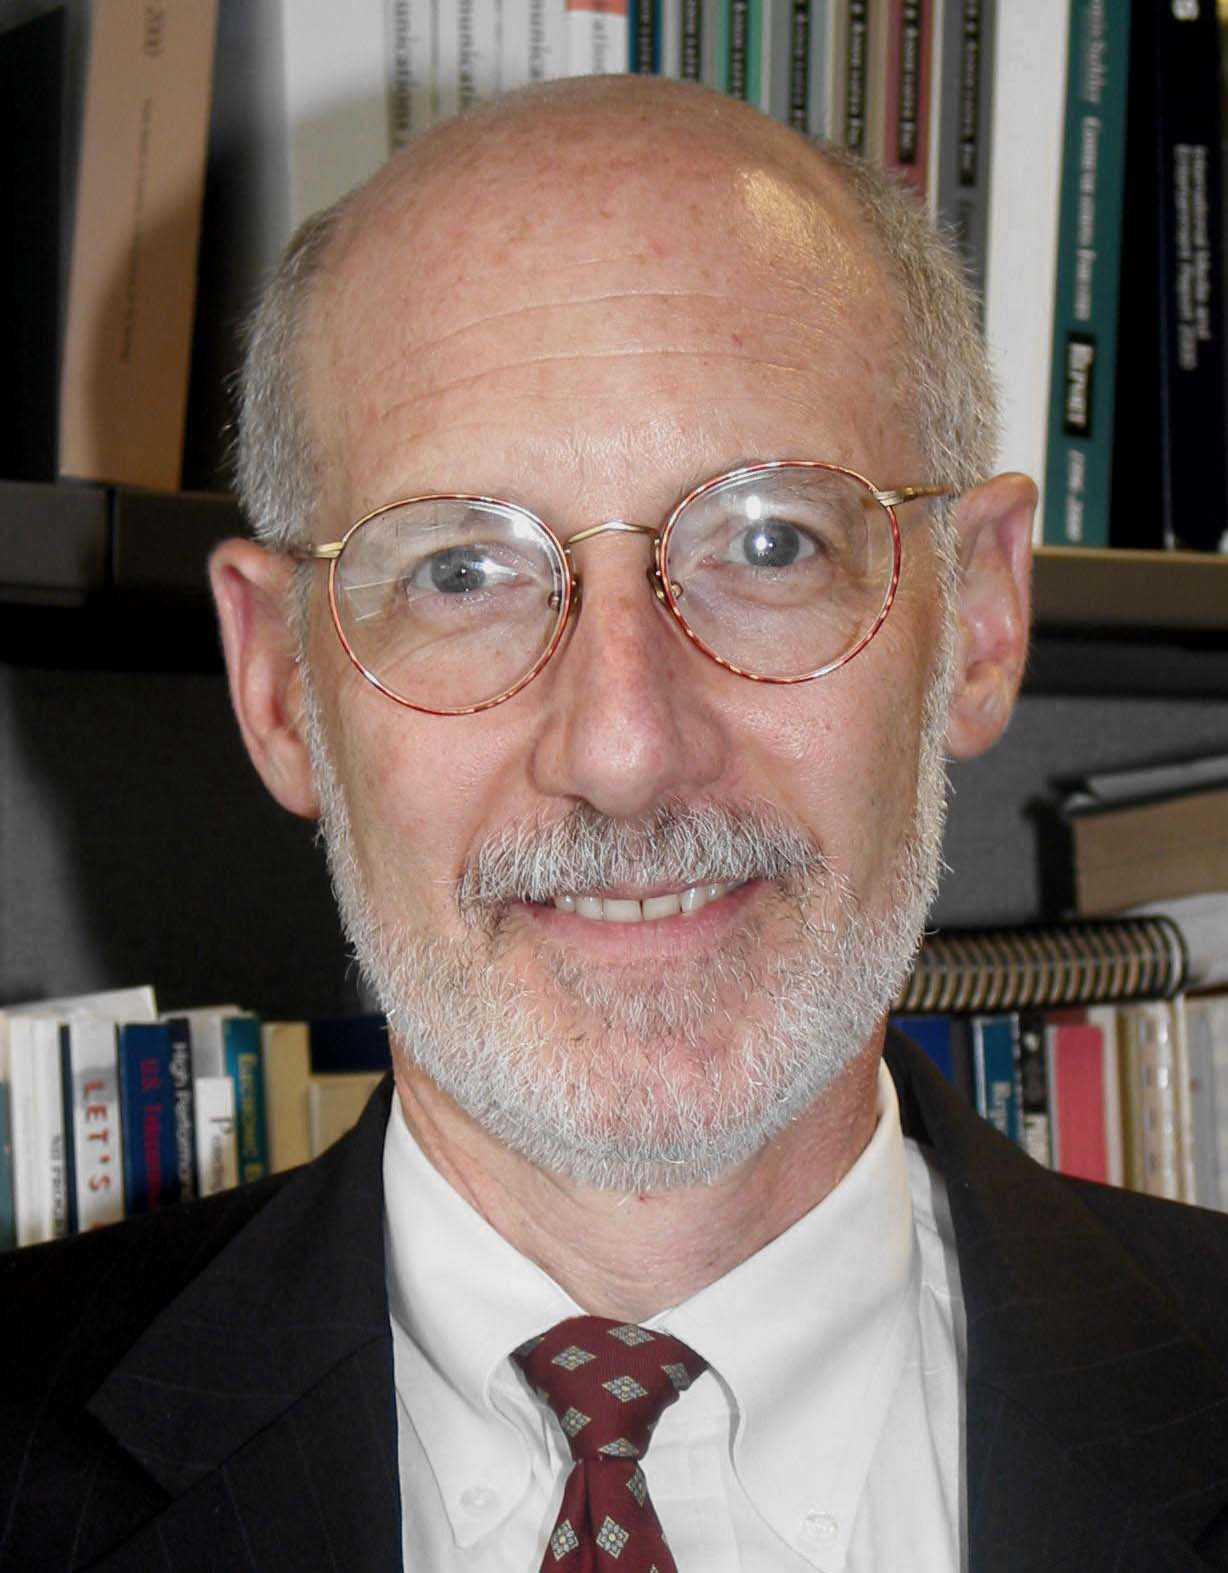 FCC Policy Chief, Dr. Robert Pepper will present B. Aubrey Fisher Lecture